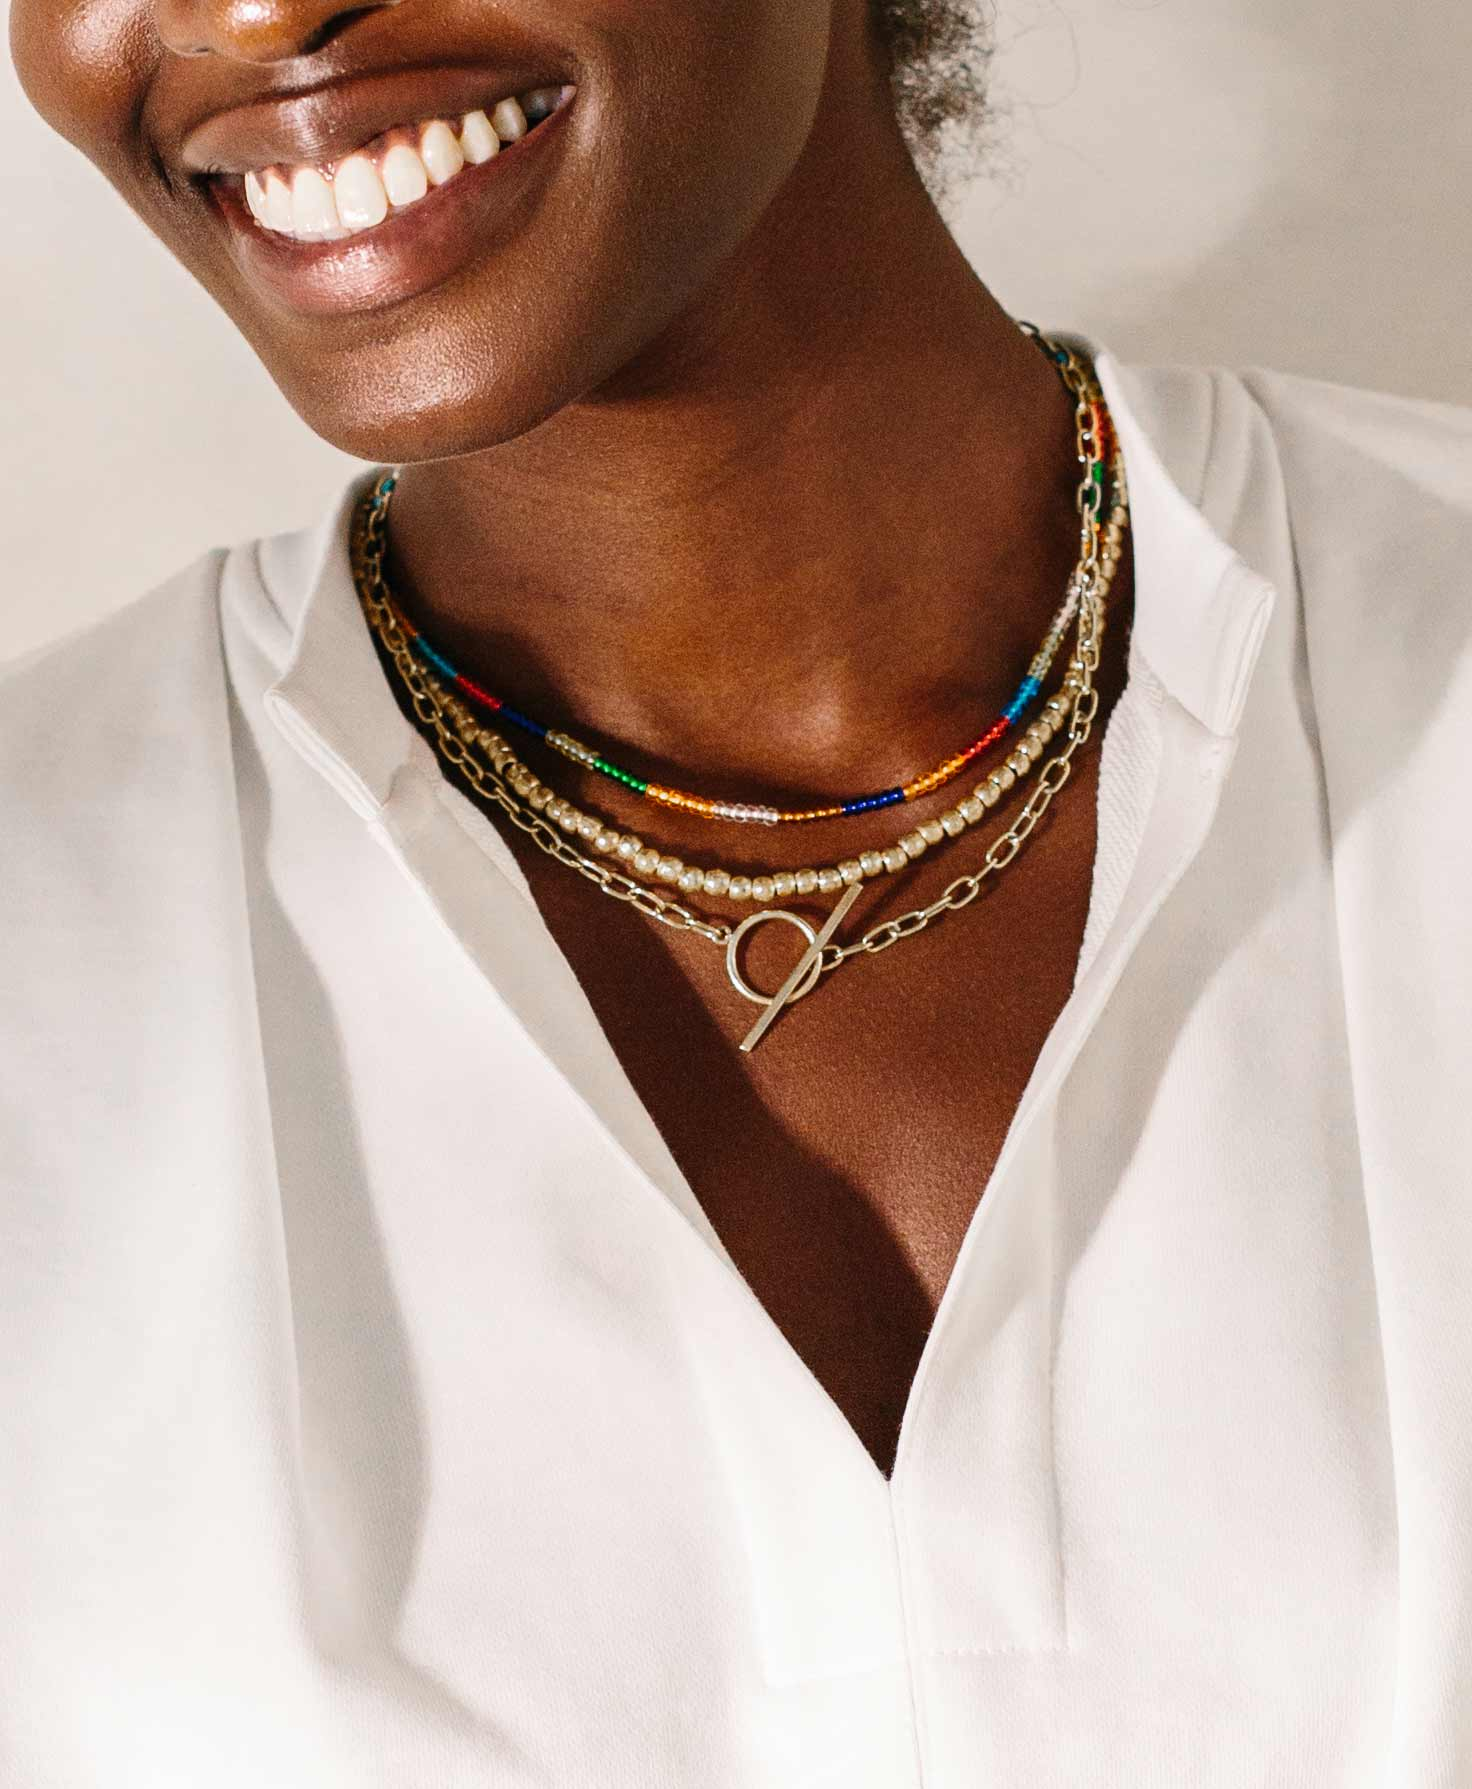 A model wears the short Artillery Pearl Necklace with two other short necklaces, the Infinity Necklace and Chromatic Necklace. Together, the necklaces create a layered choker look.